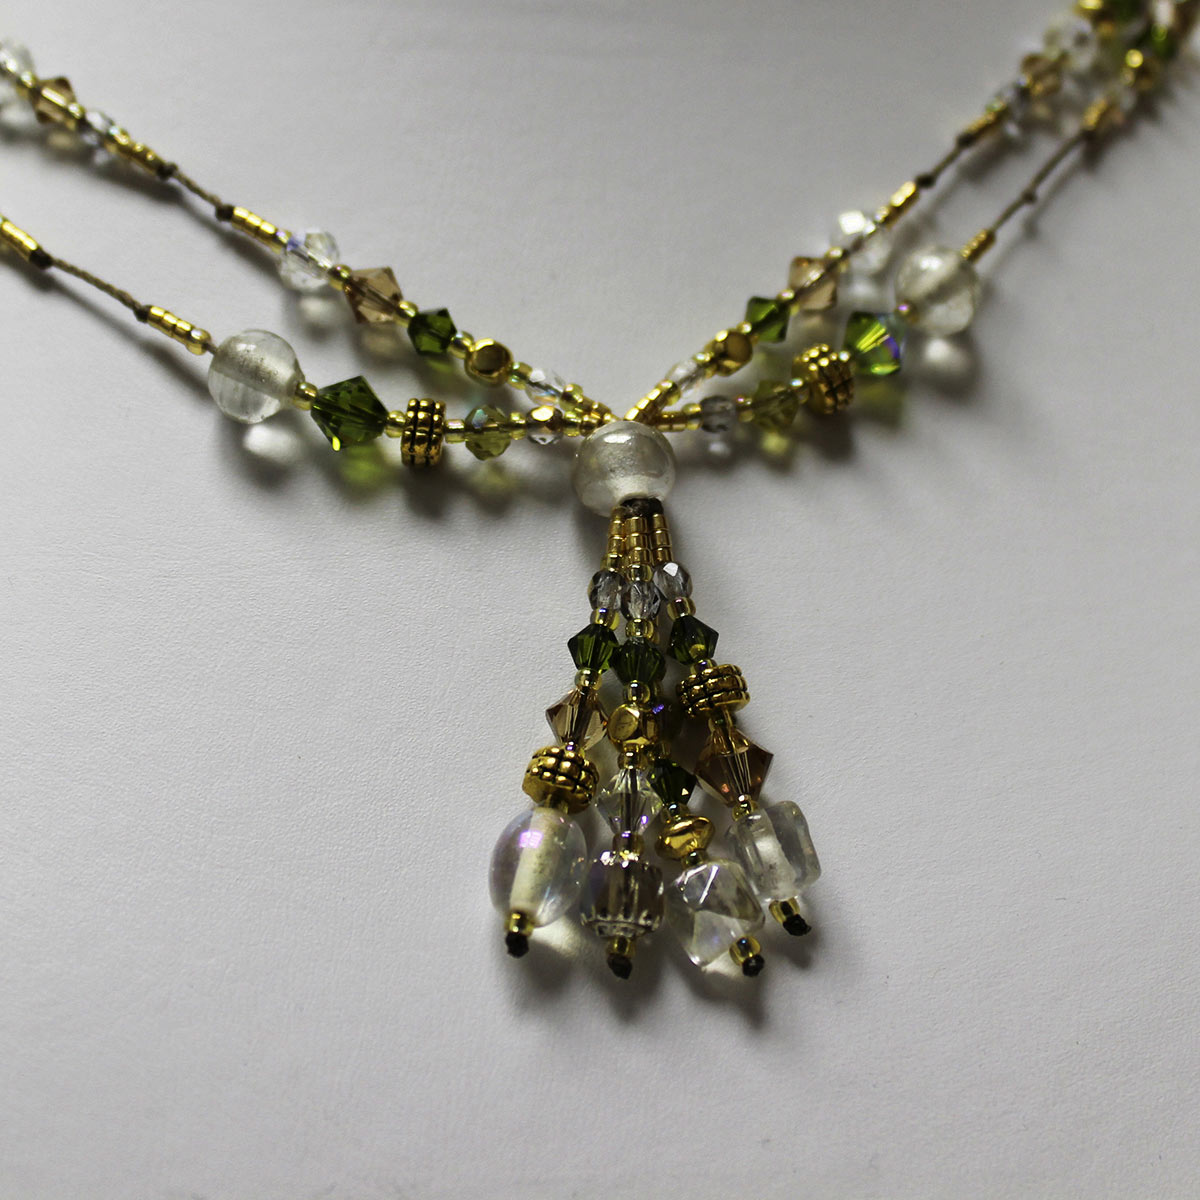 Vintage-Inspired Double Strand Necklace